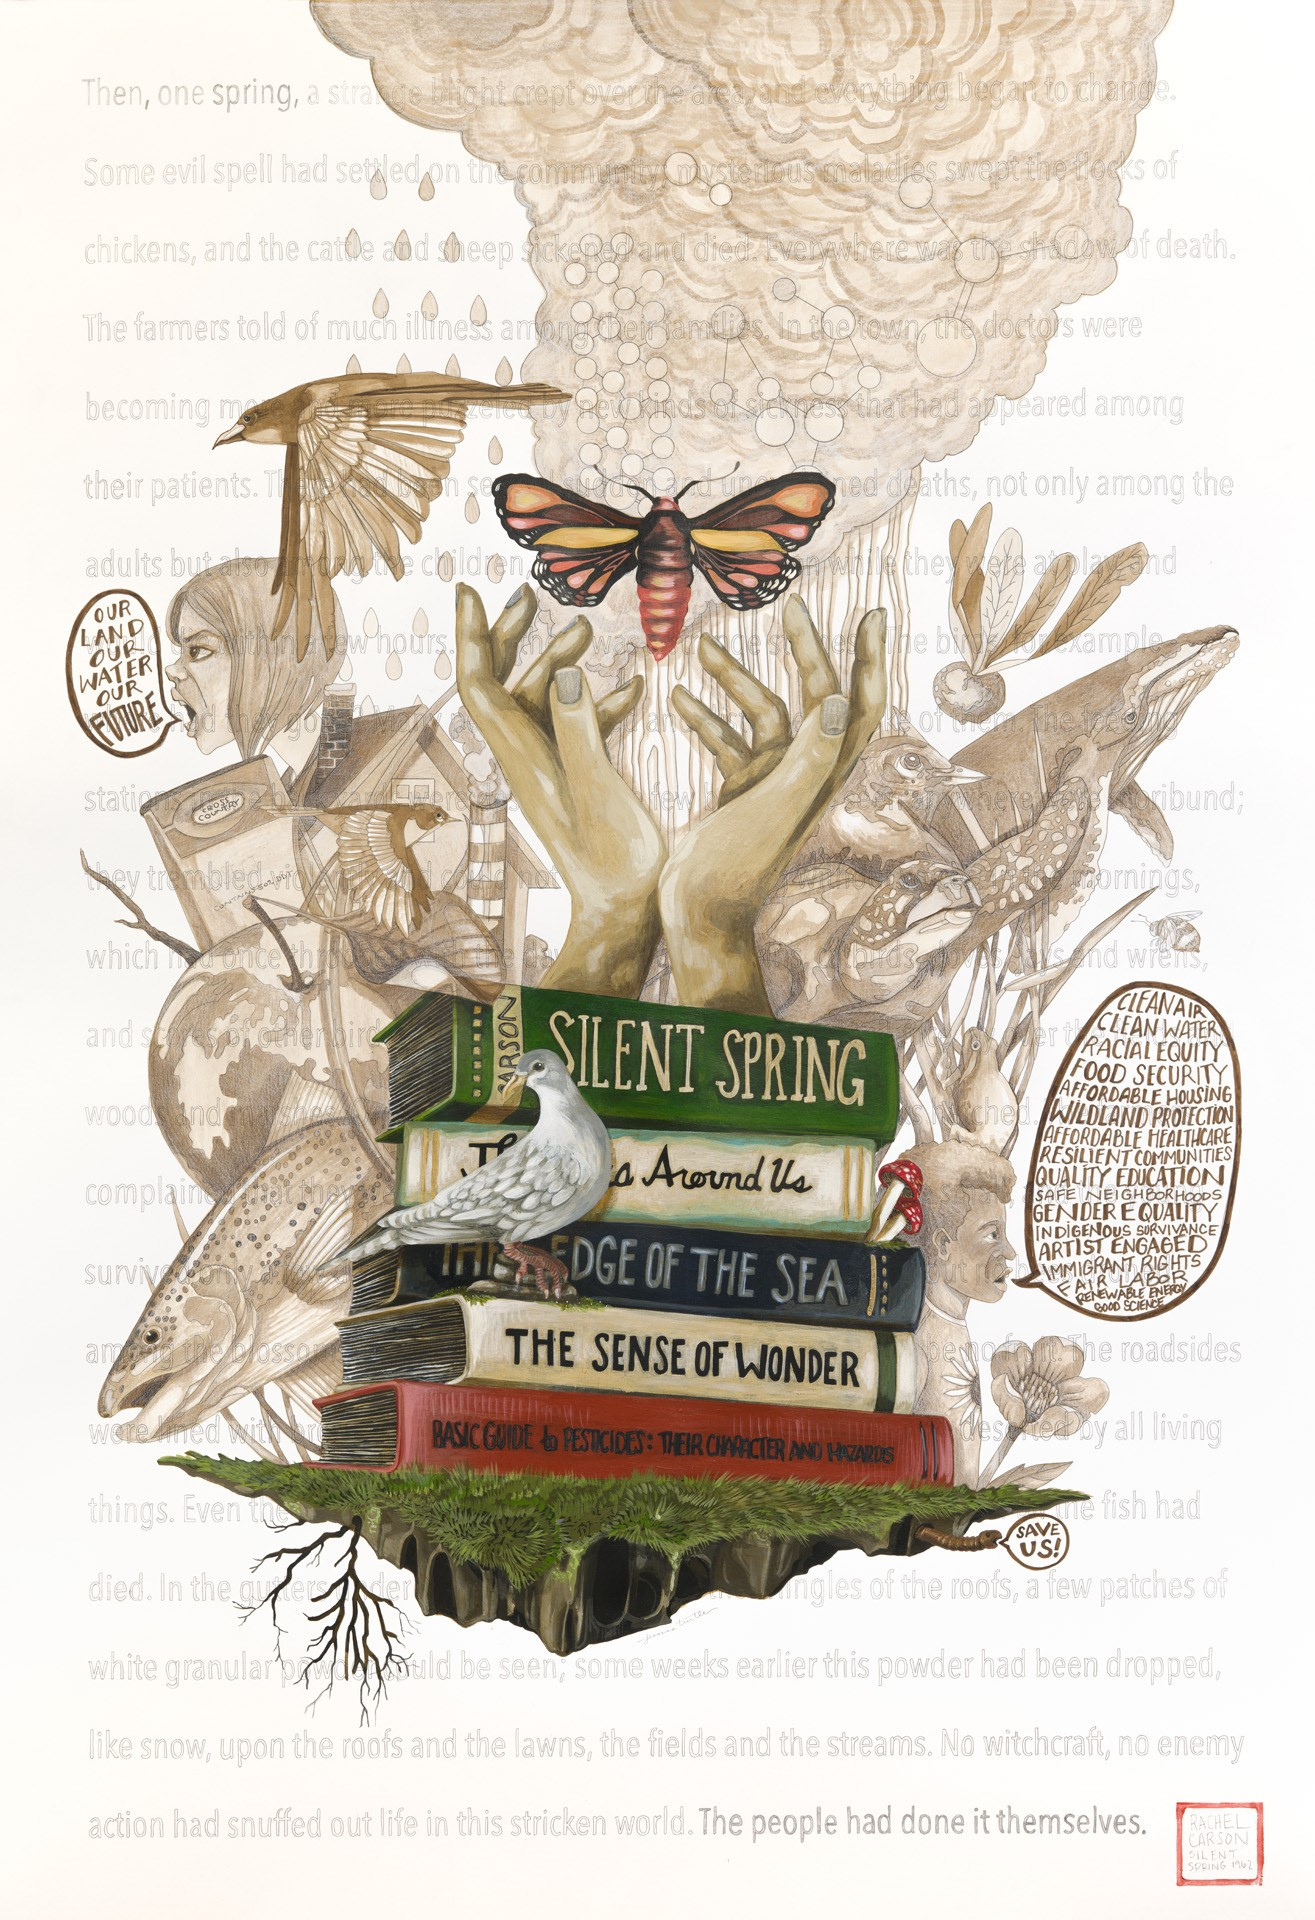 illustration by Jessica Turtle depicting a stack of classic environmental books along with insects, birds, and plants